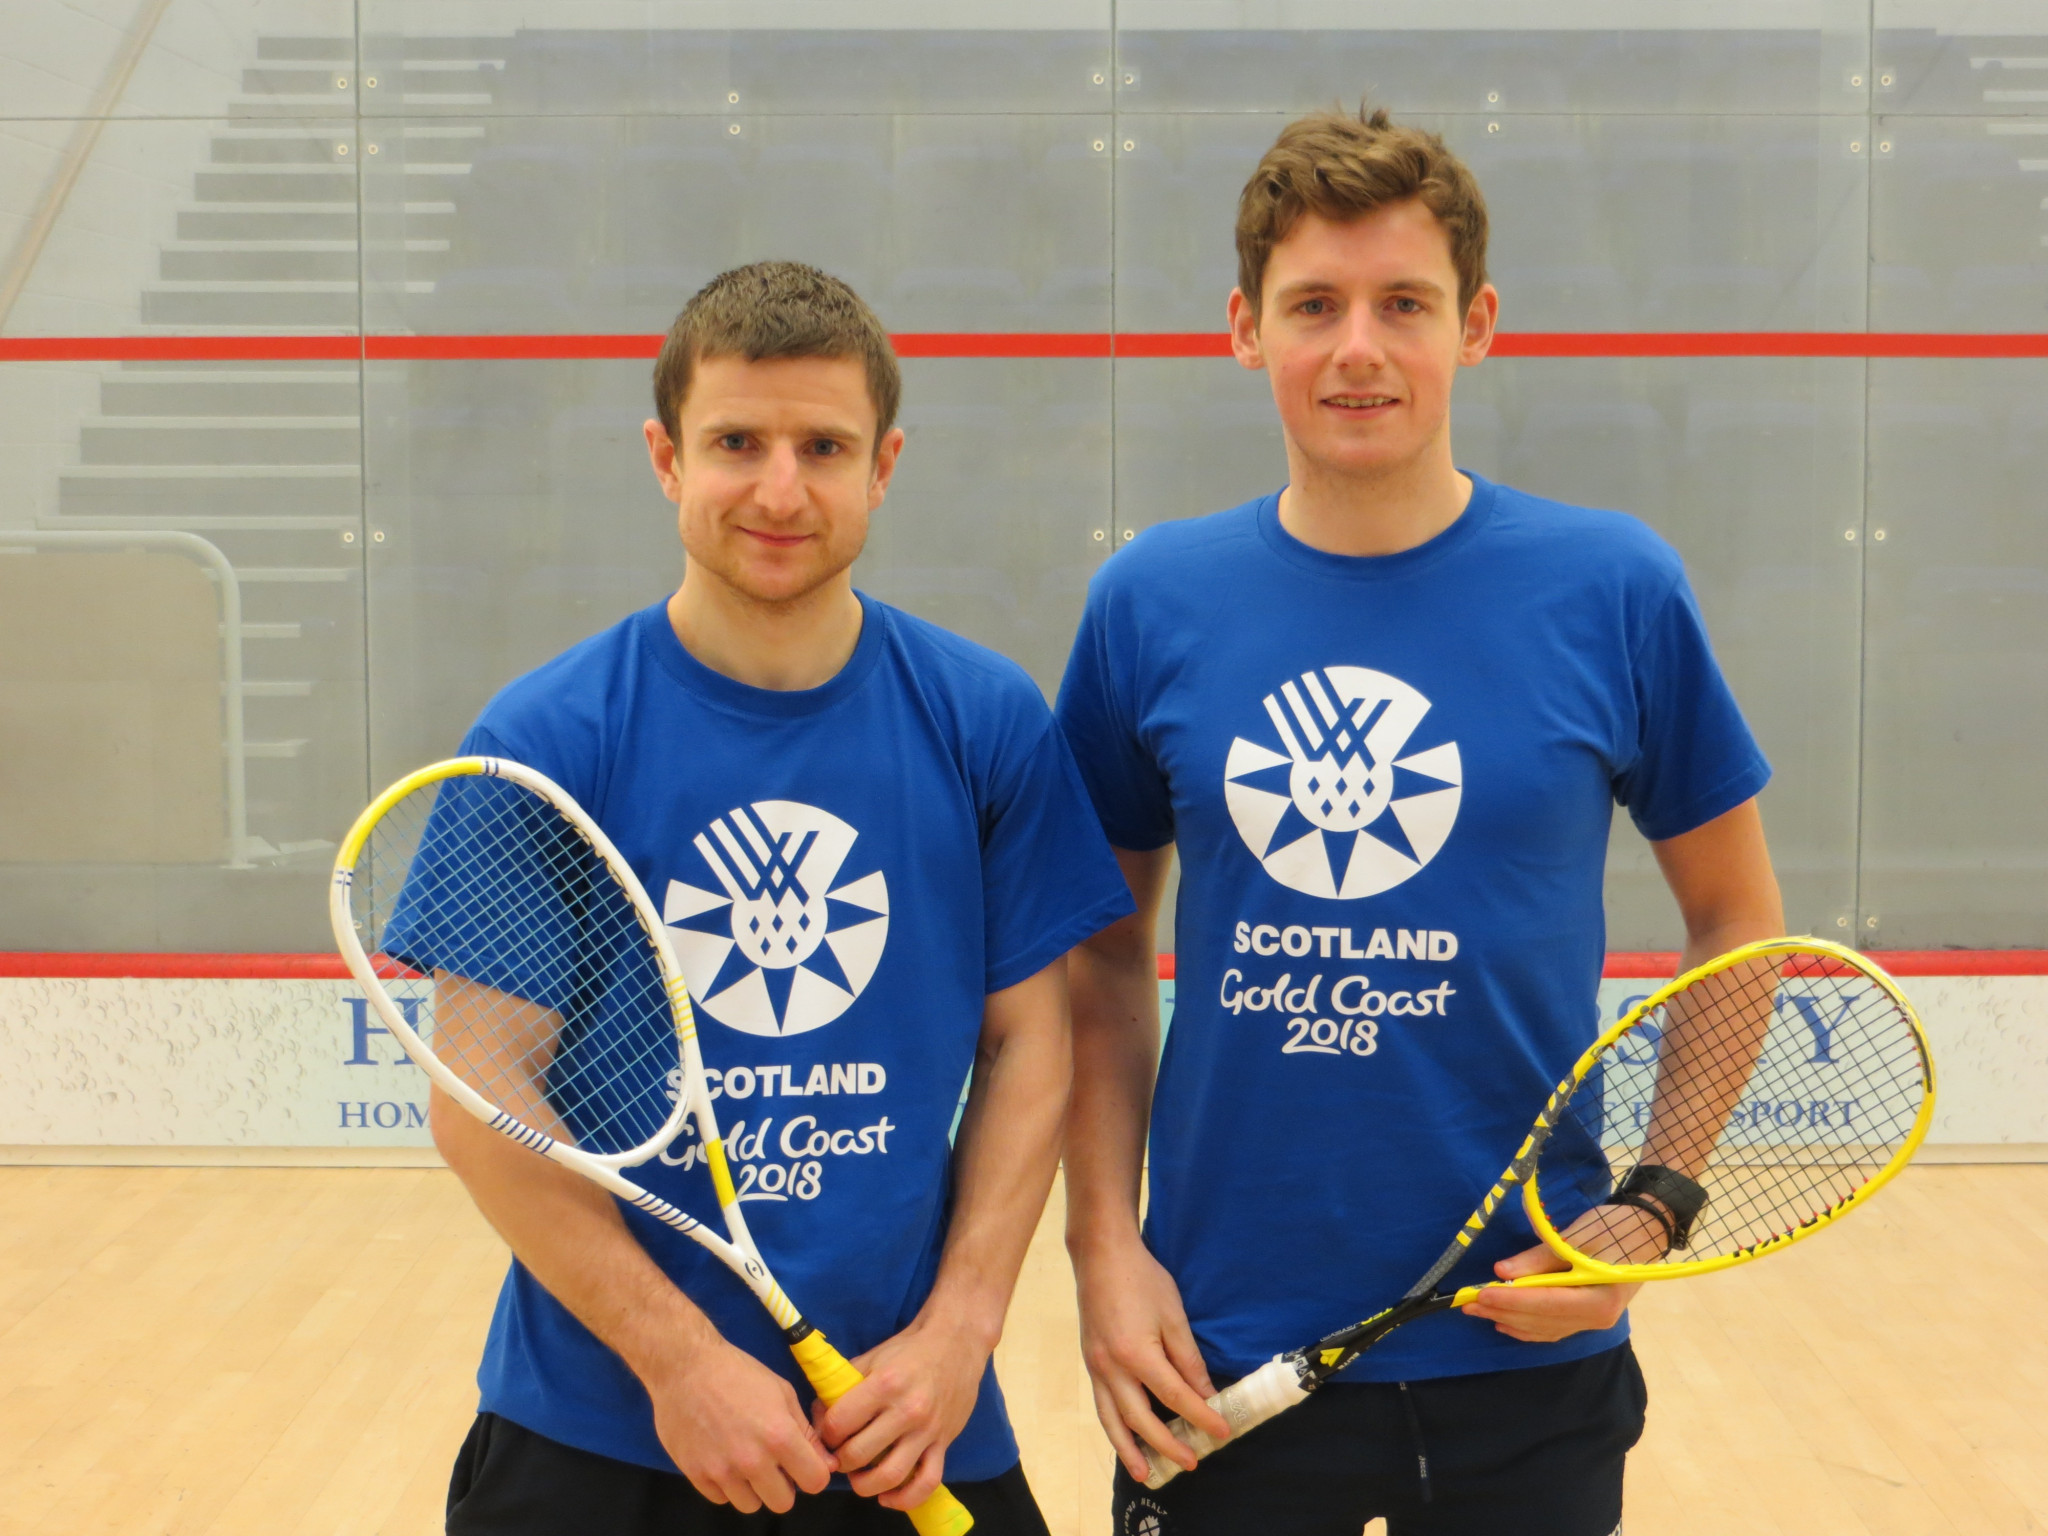 Squash players Clyne and Lobban selected to compete for Scotland at Gold Coast 2018